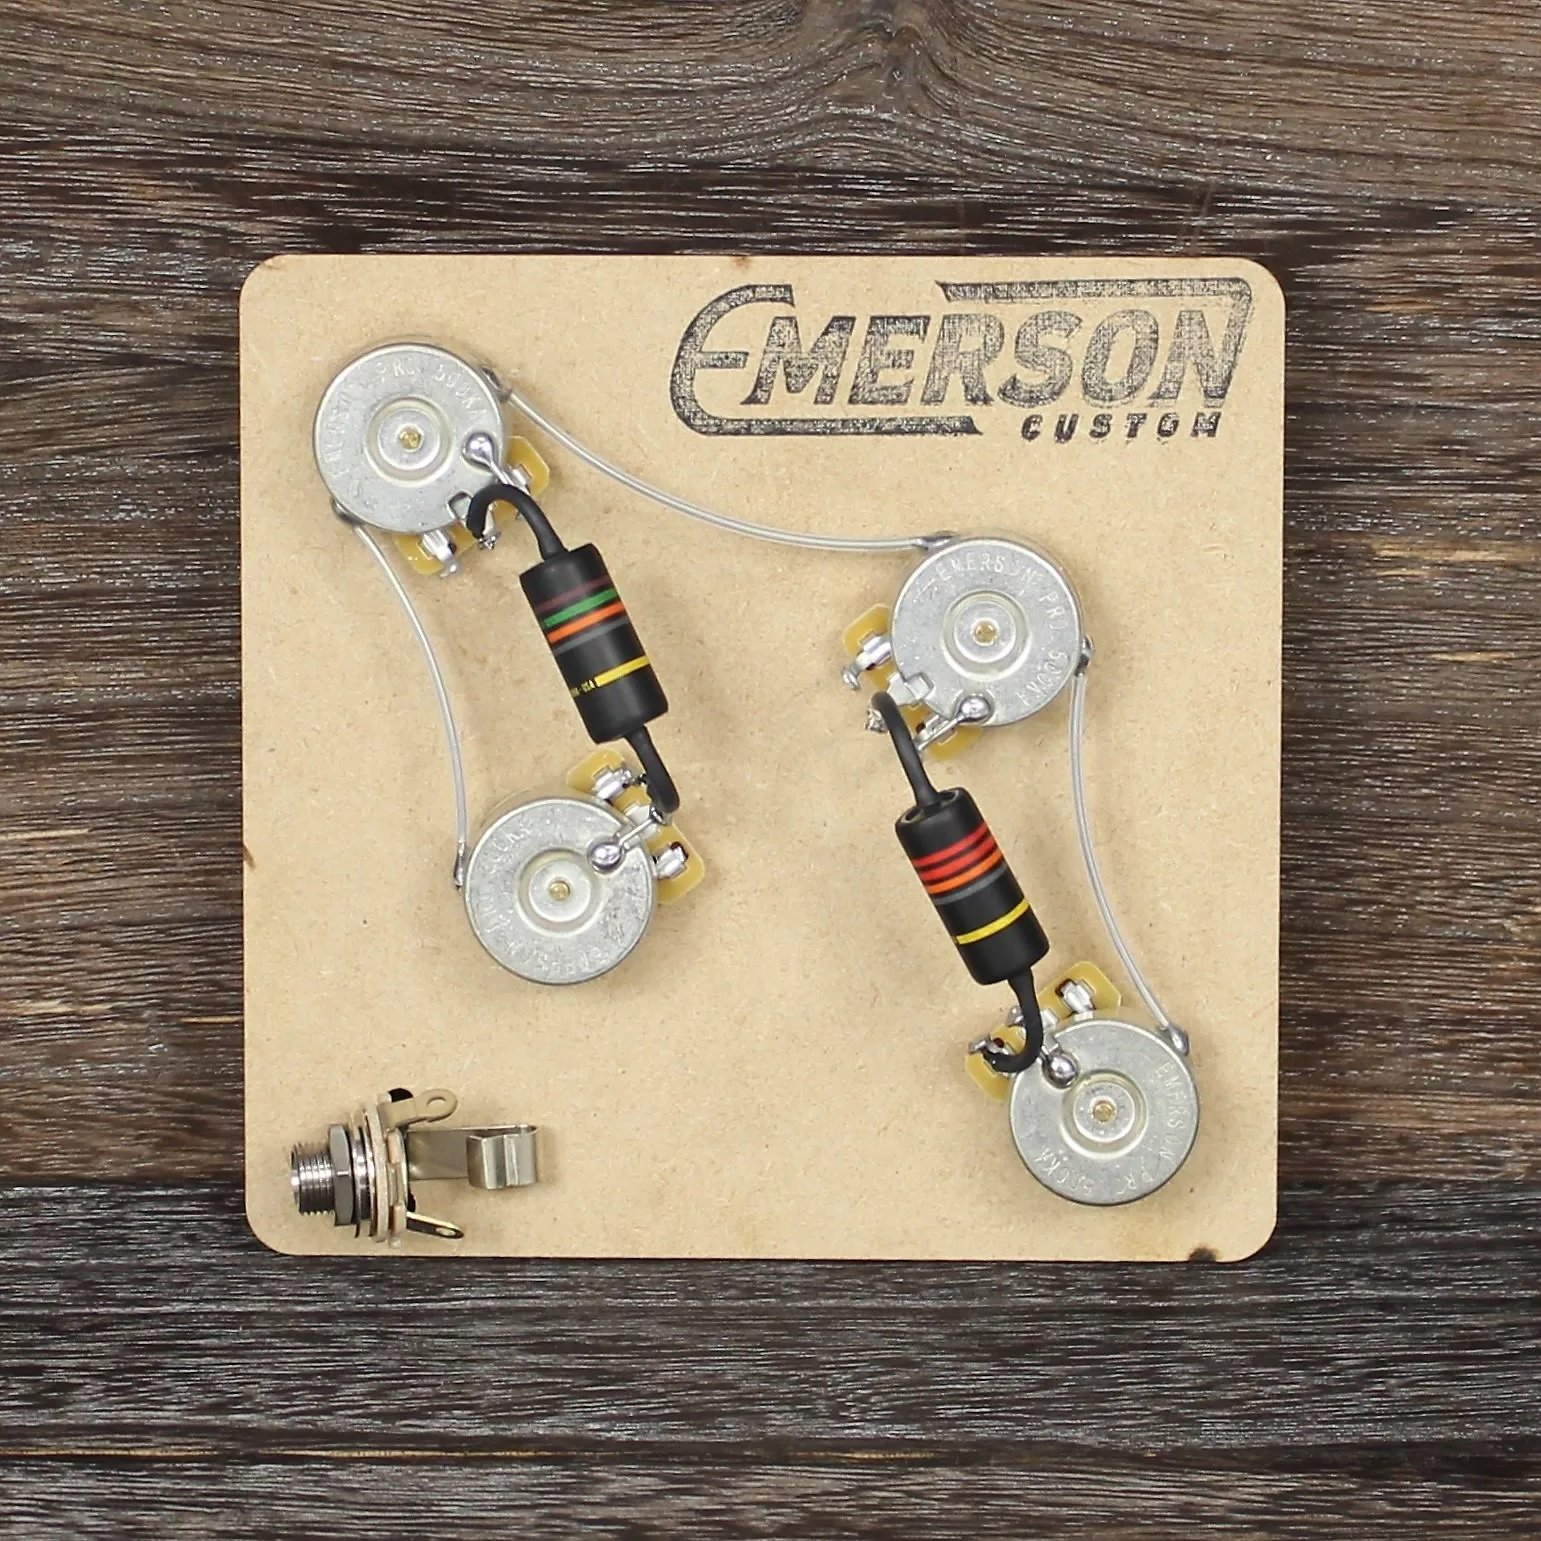 Emerson Custom 4 Knob Prewired Kit For Prs Guitars Guitar Wiring Harness 3 Way Toggle Switch 500k Volume Tone Jack